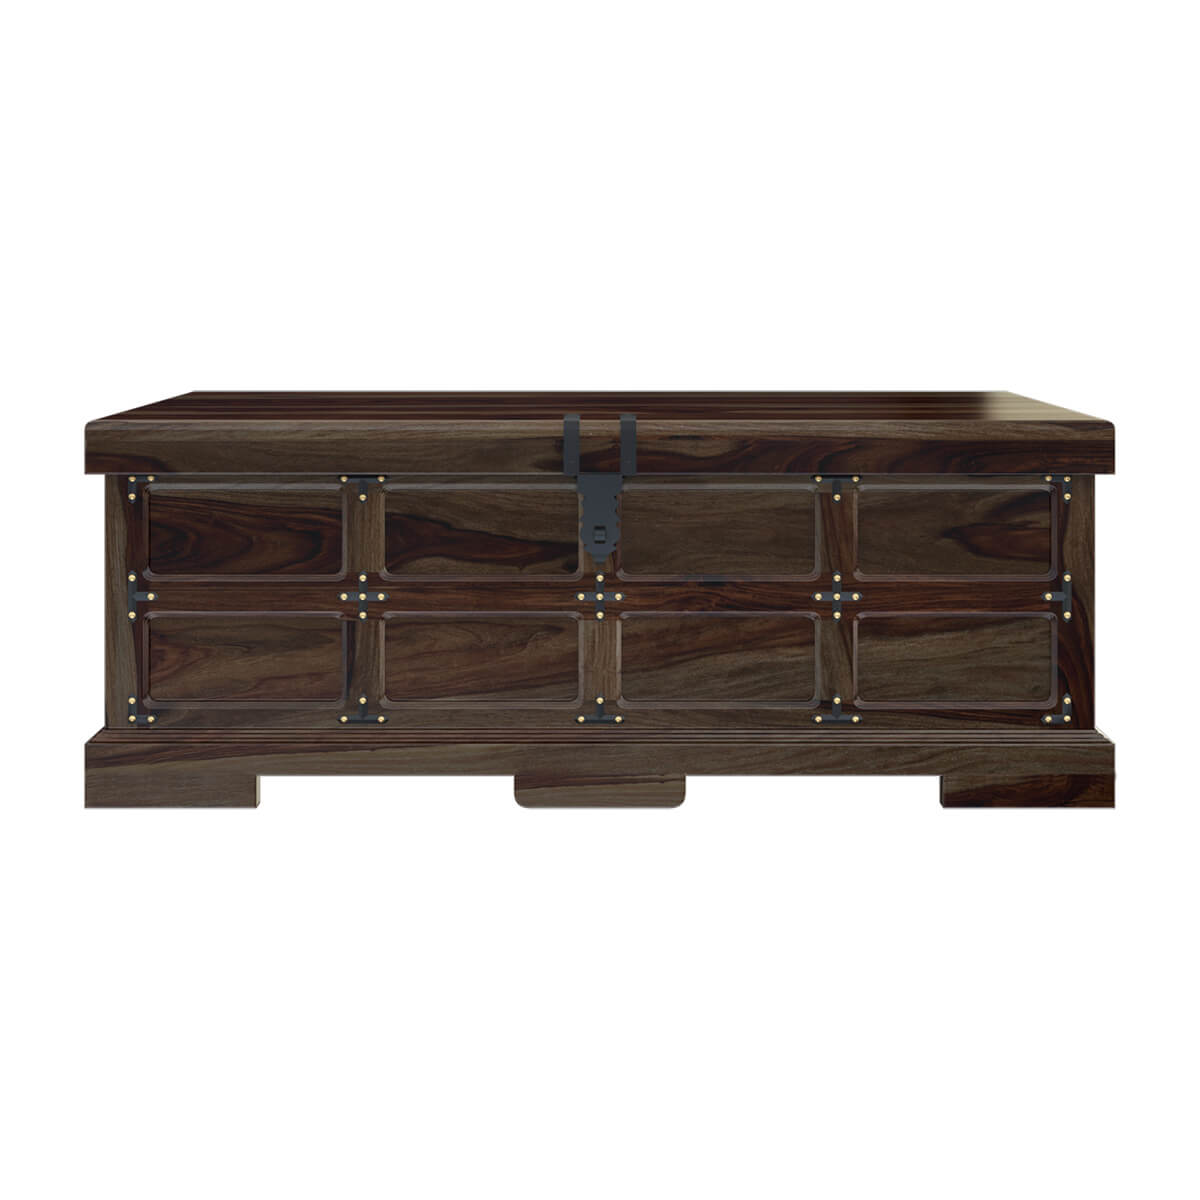 Beaufort steamer storage trunk rustic coffee table chest Coffee table chest with storage